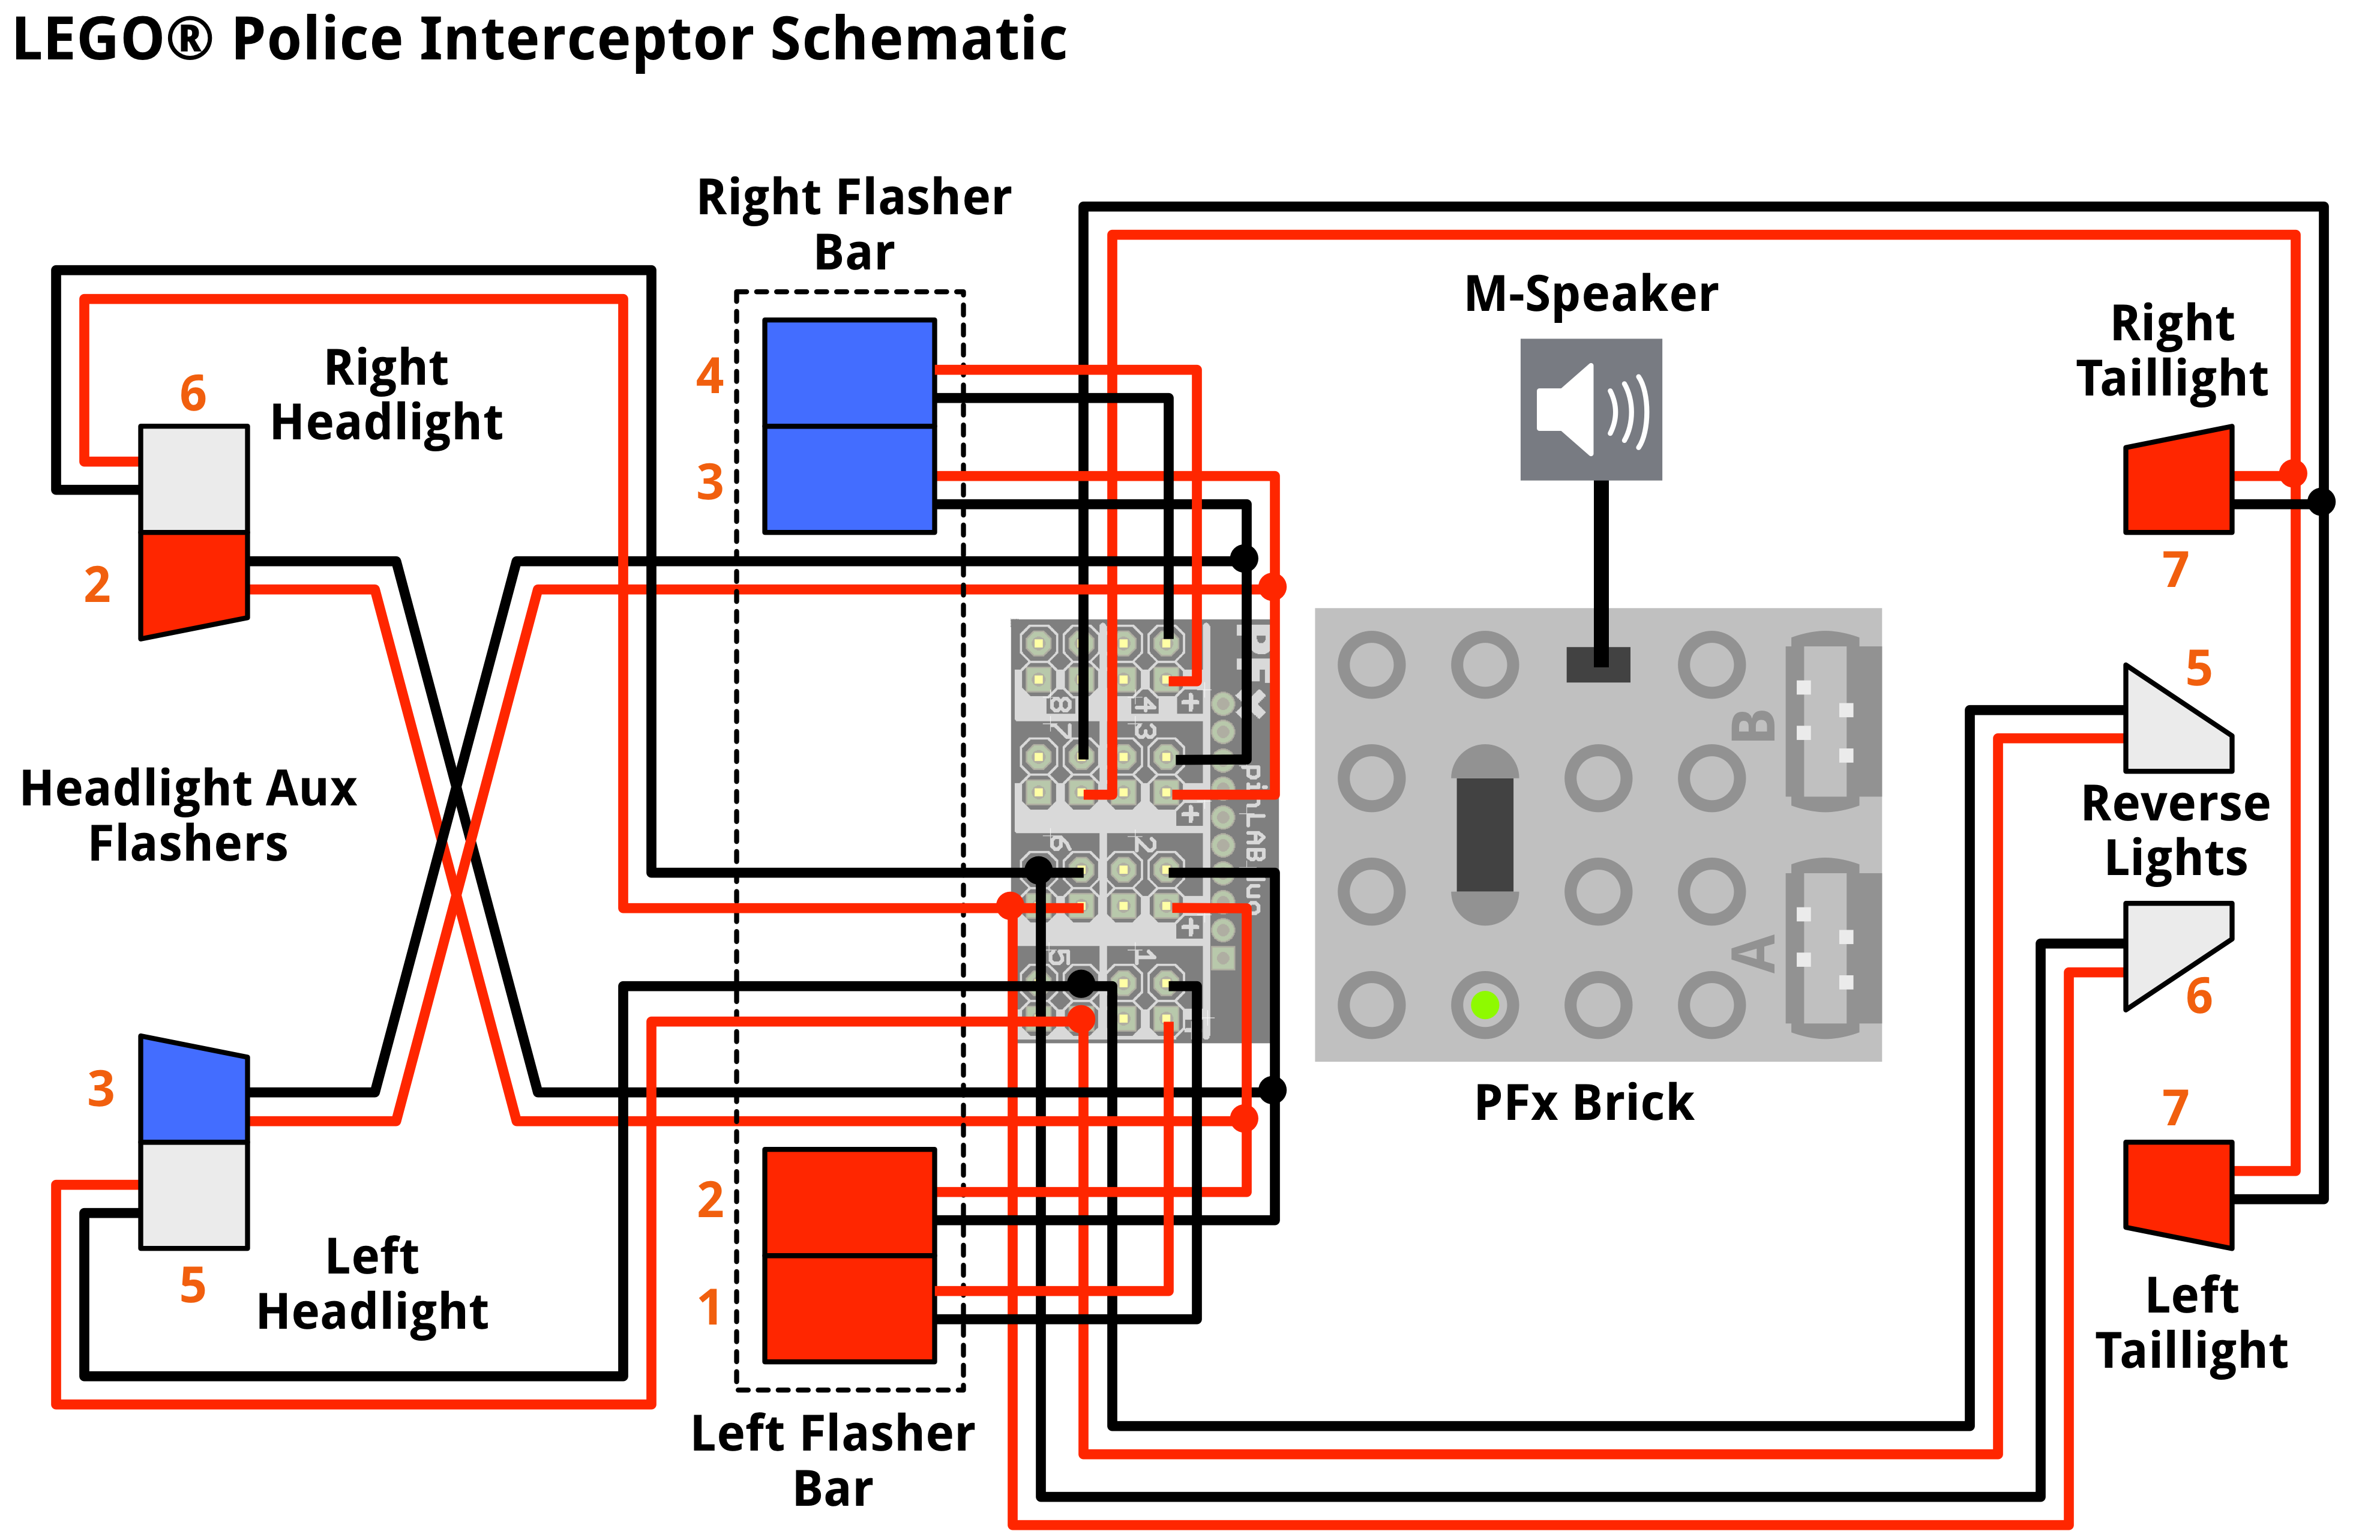 blog a power functions extension wire discreetly feeds out of the bottom of the car to connect to an external battery box a wiring diagram of the police car is